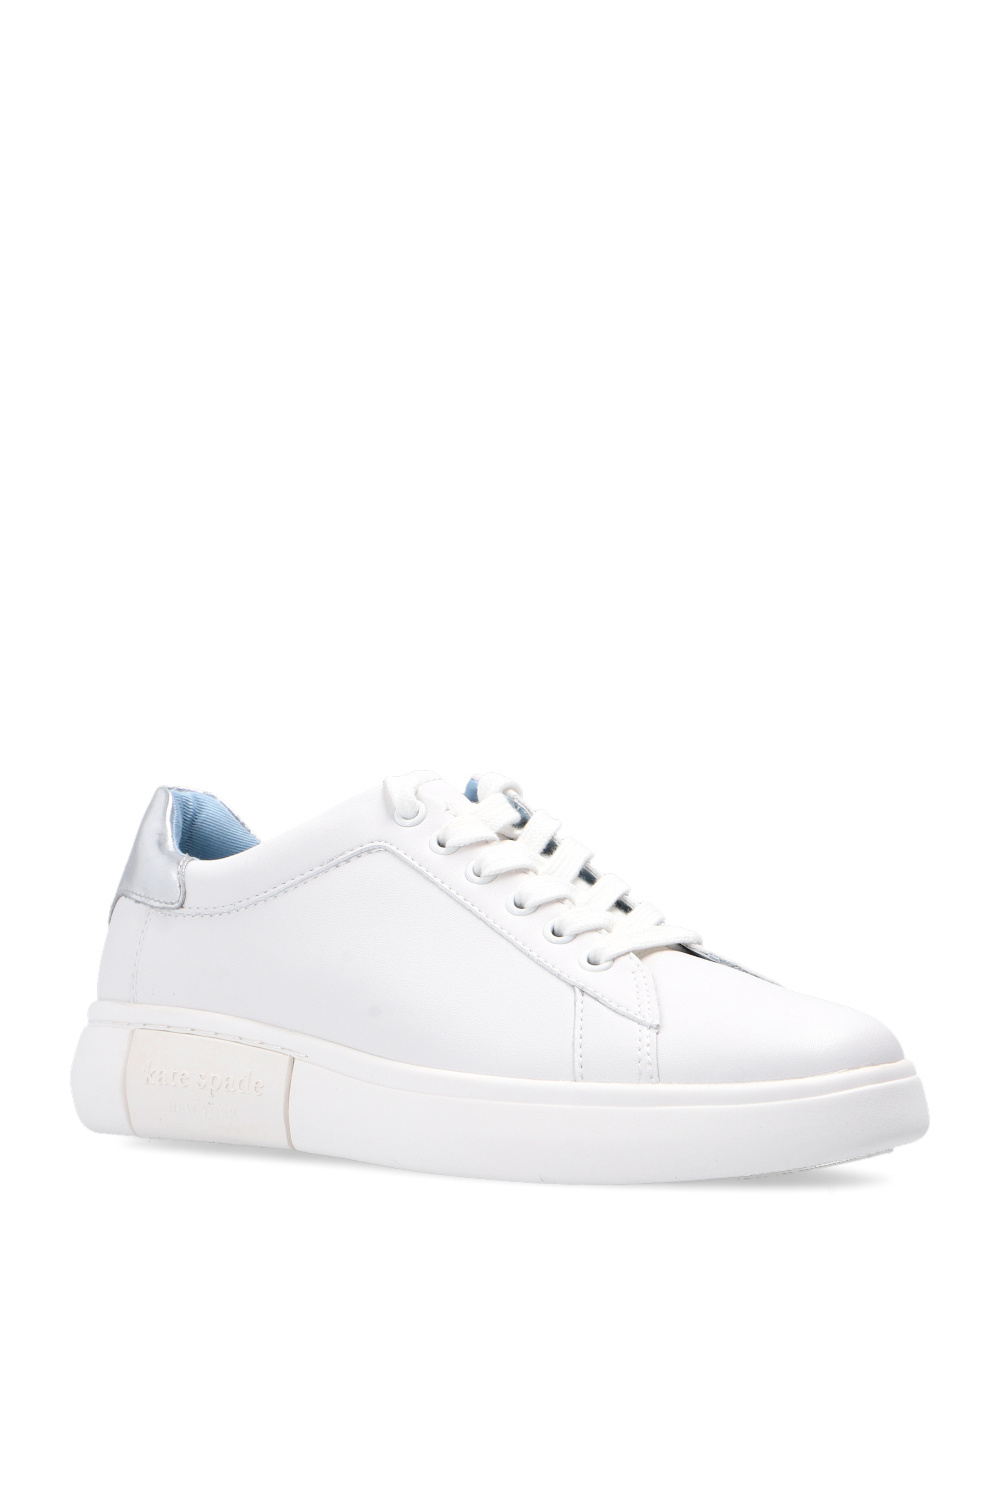 Kate Spade Sneakers with logo